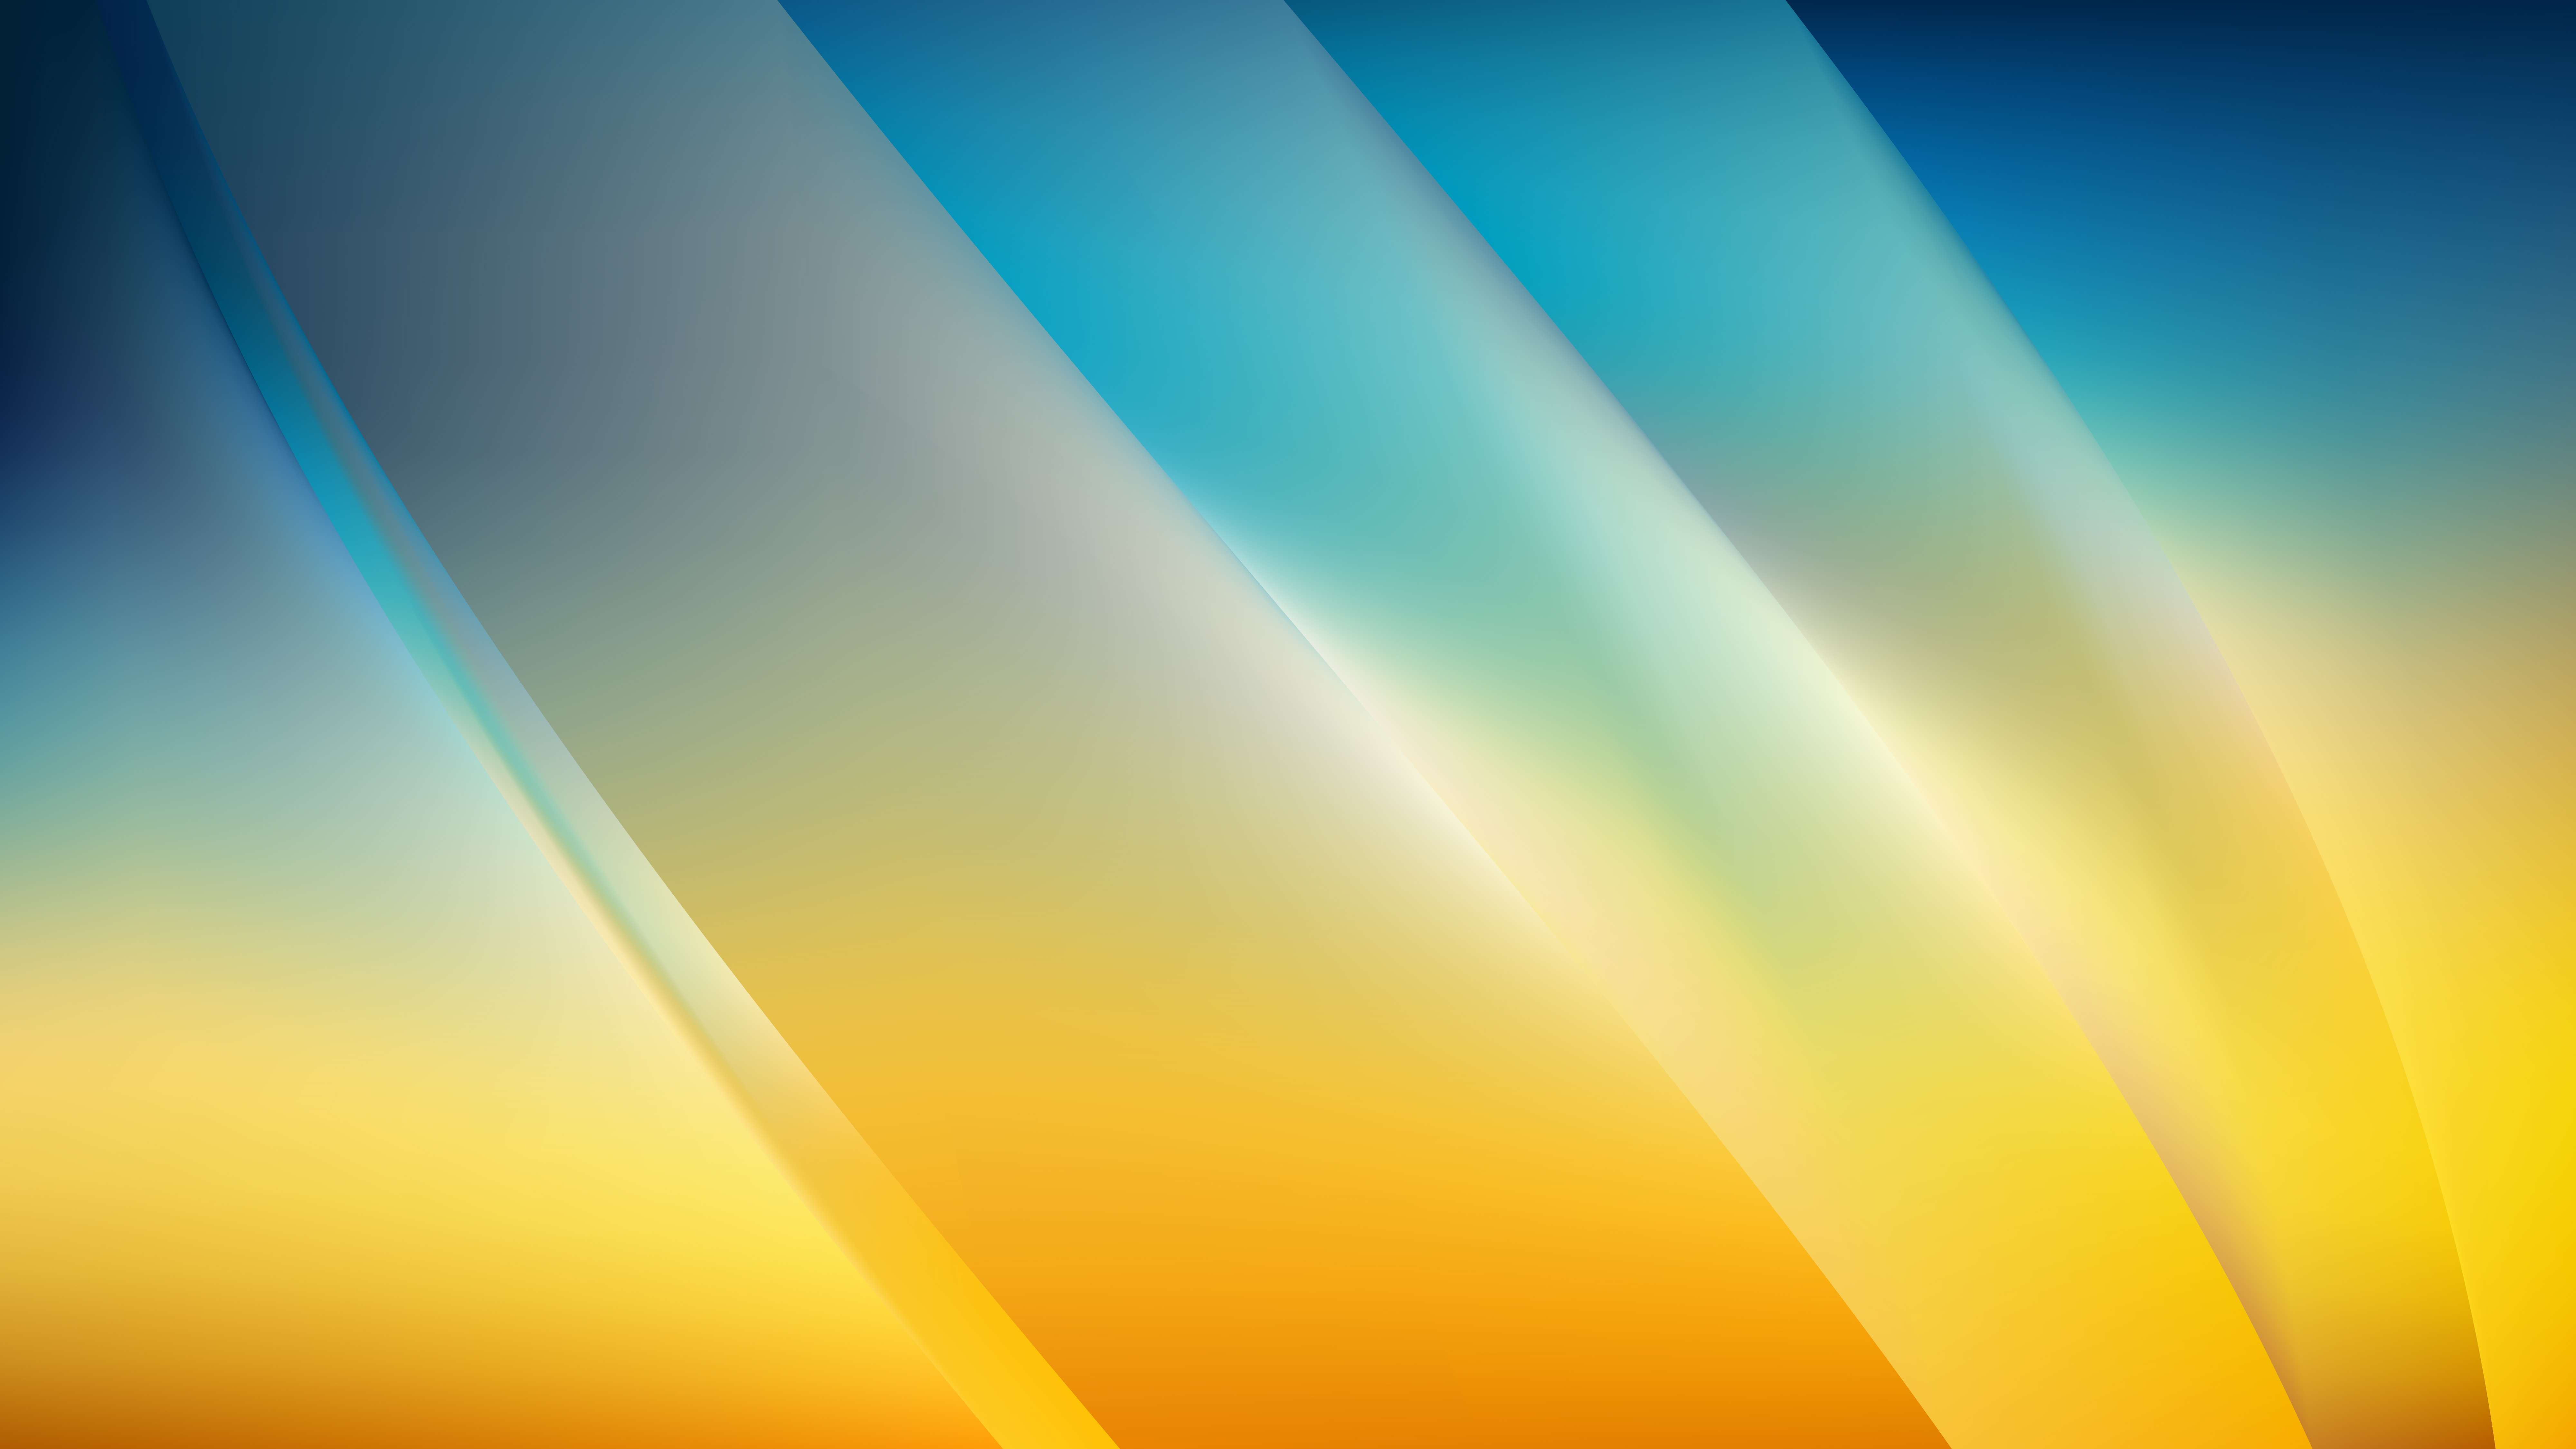 Background overlap dimension modern blue orange Vector Image |Orange And Blue Vector Background